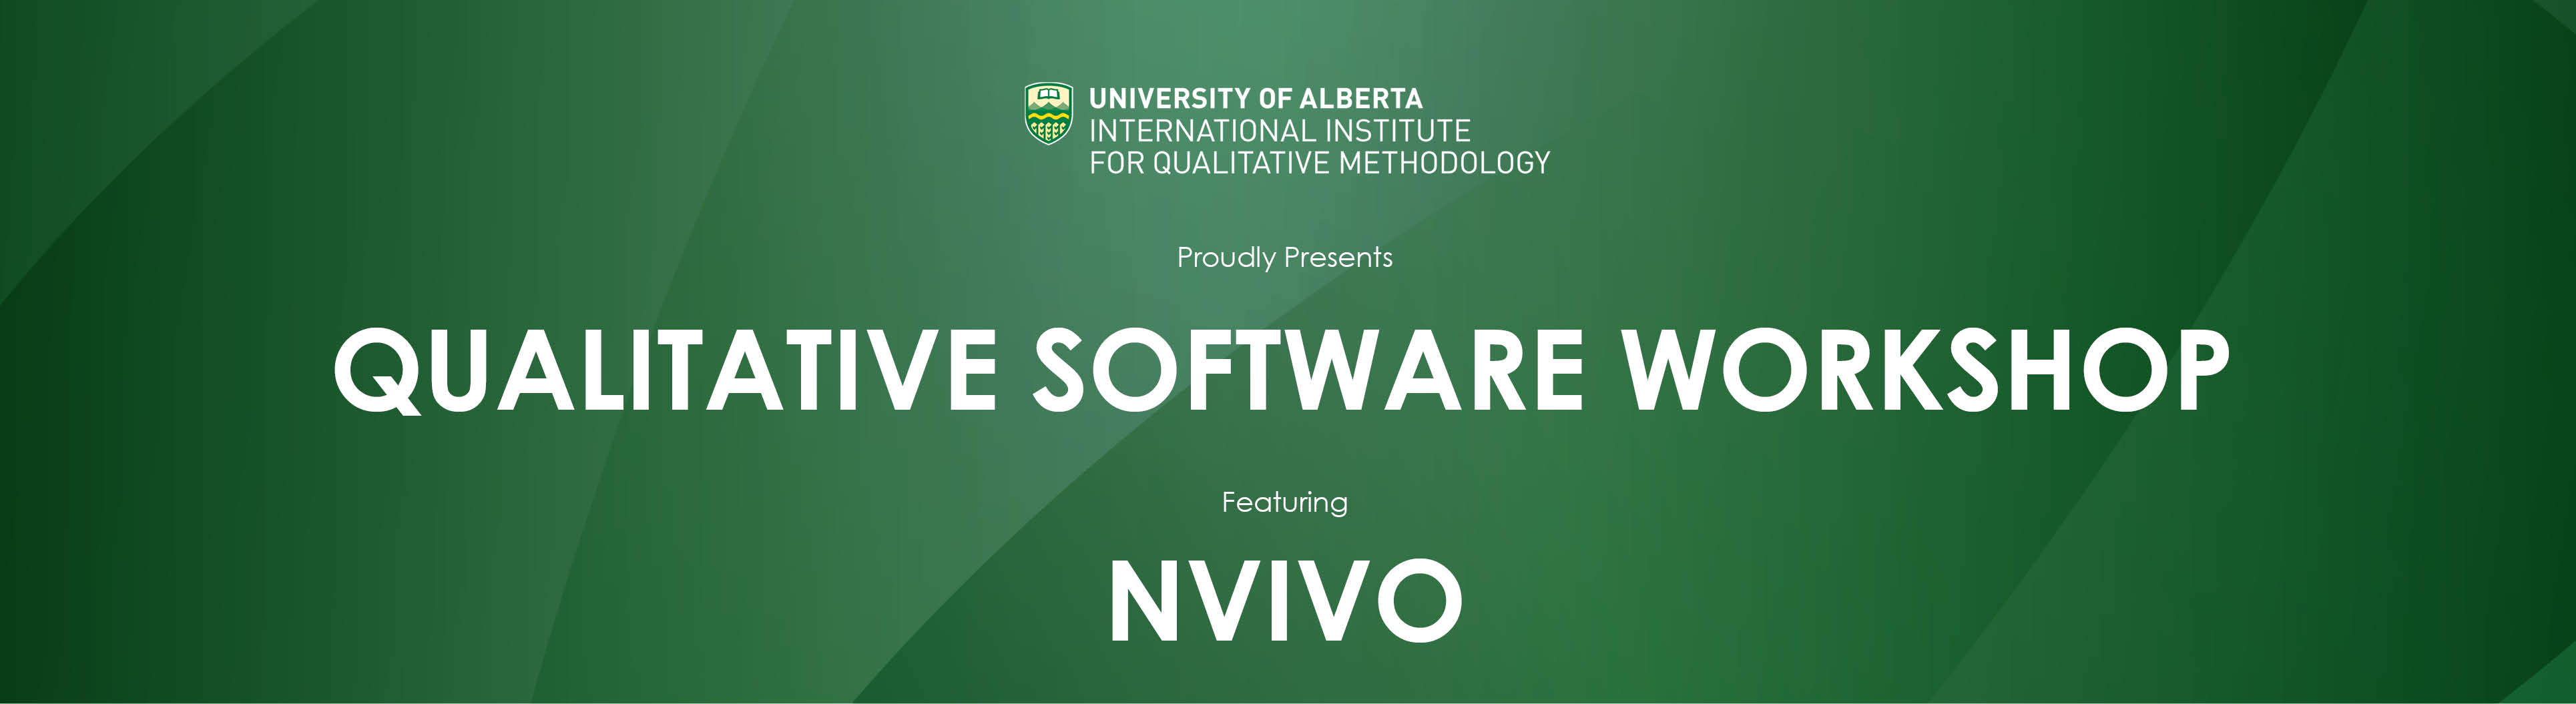 Qualitative Software Workshop featuring NVivo